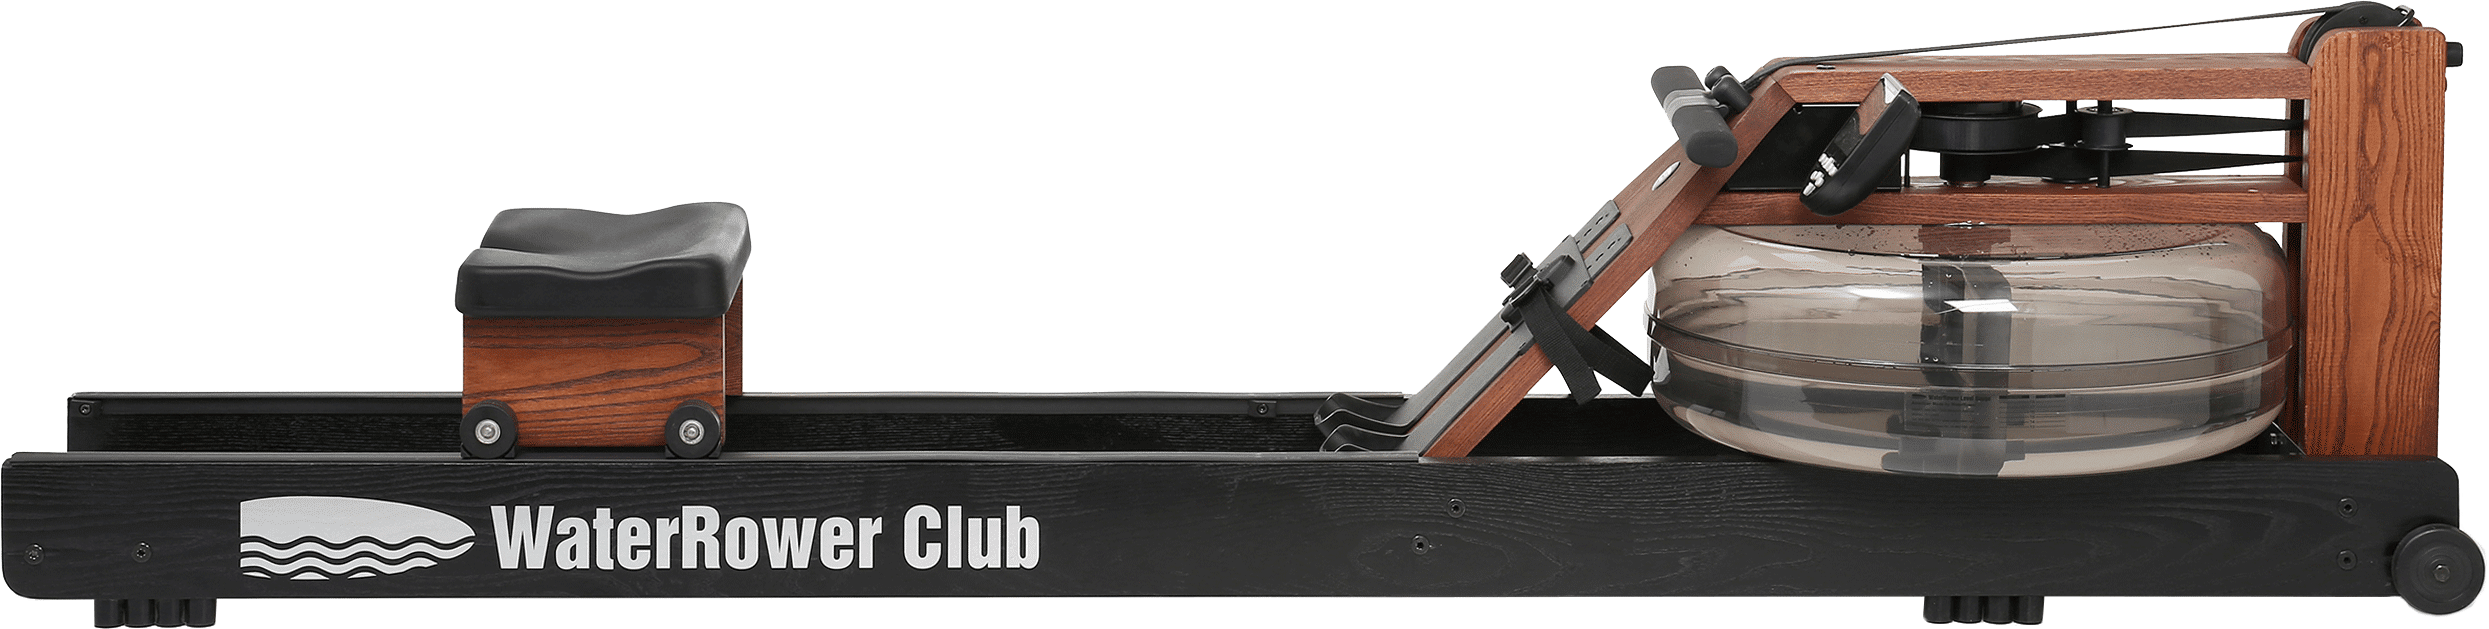 Water Rower Club Rowing Machine in Ash Wood with S4 Monitor